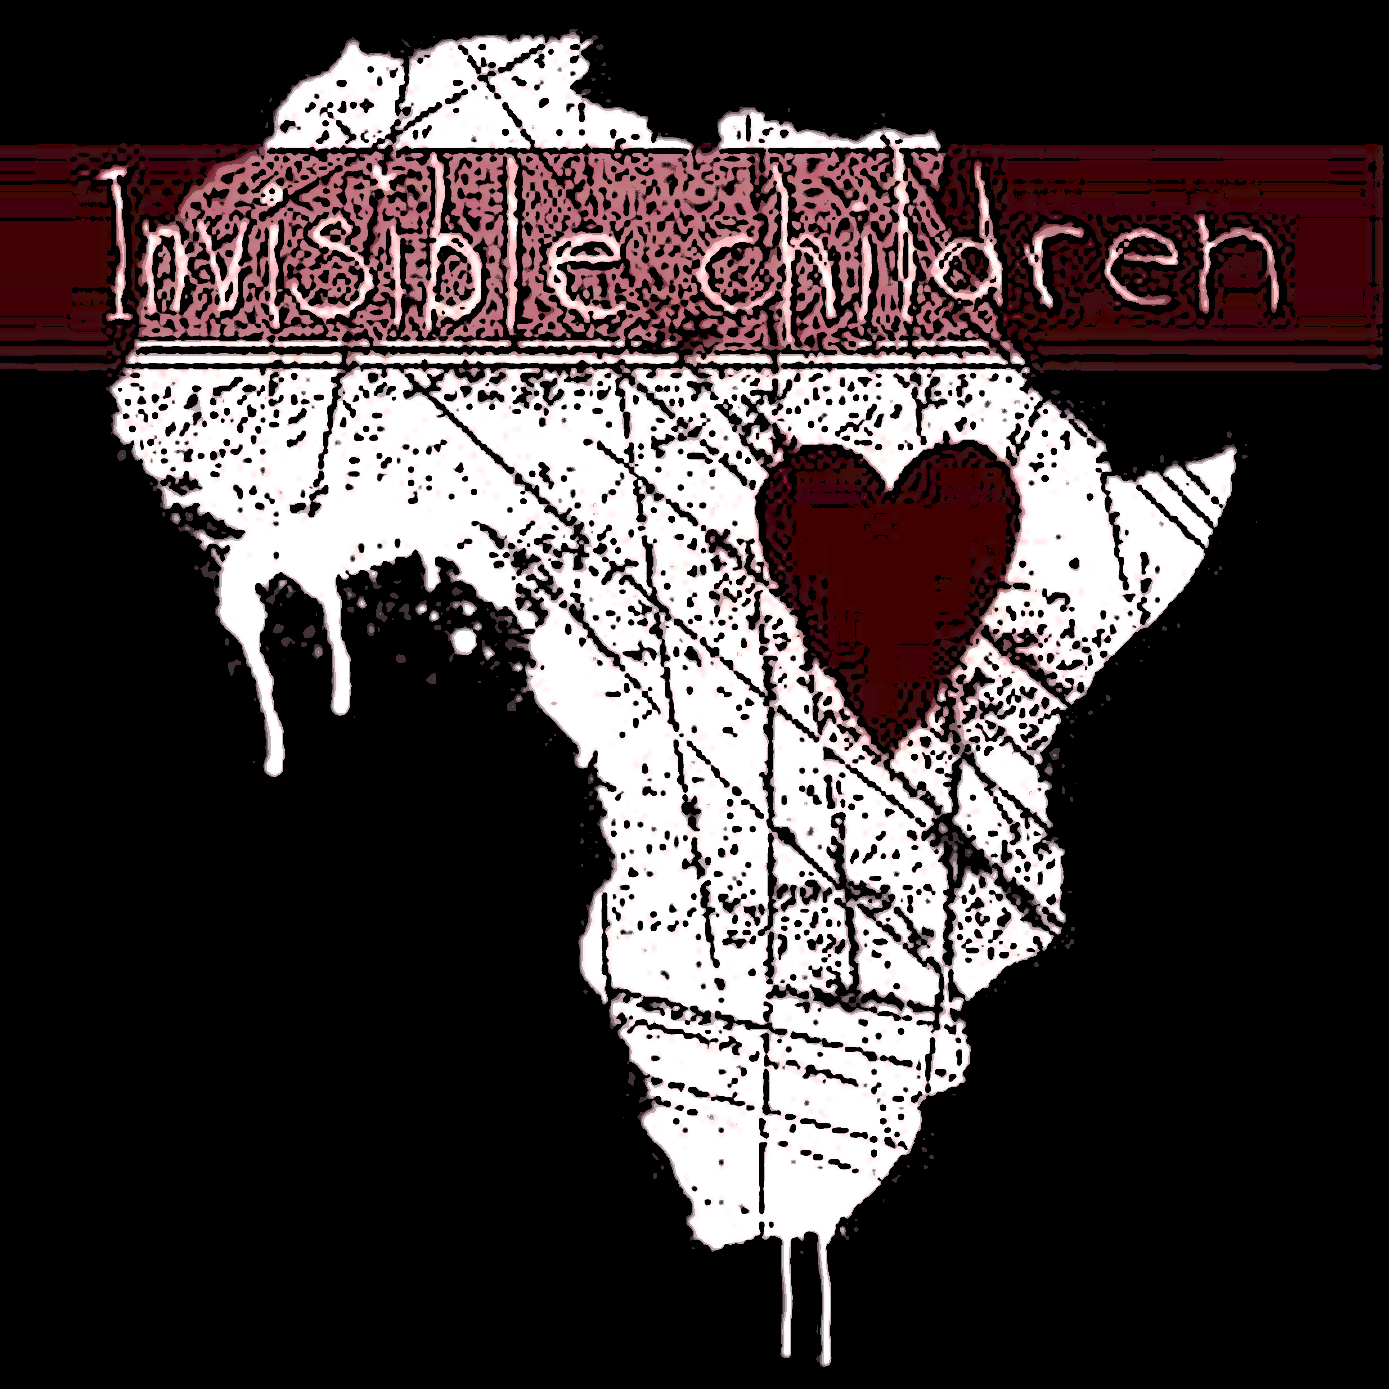 invisible children essay Invisible children is a 2006 american documentary film which depicts the human rights abuses by the lord's resistance army in uganda.